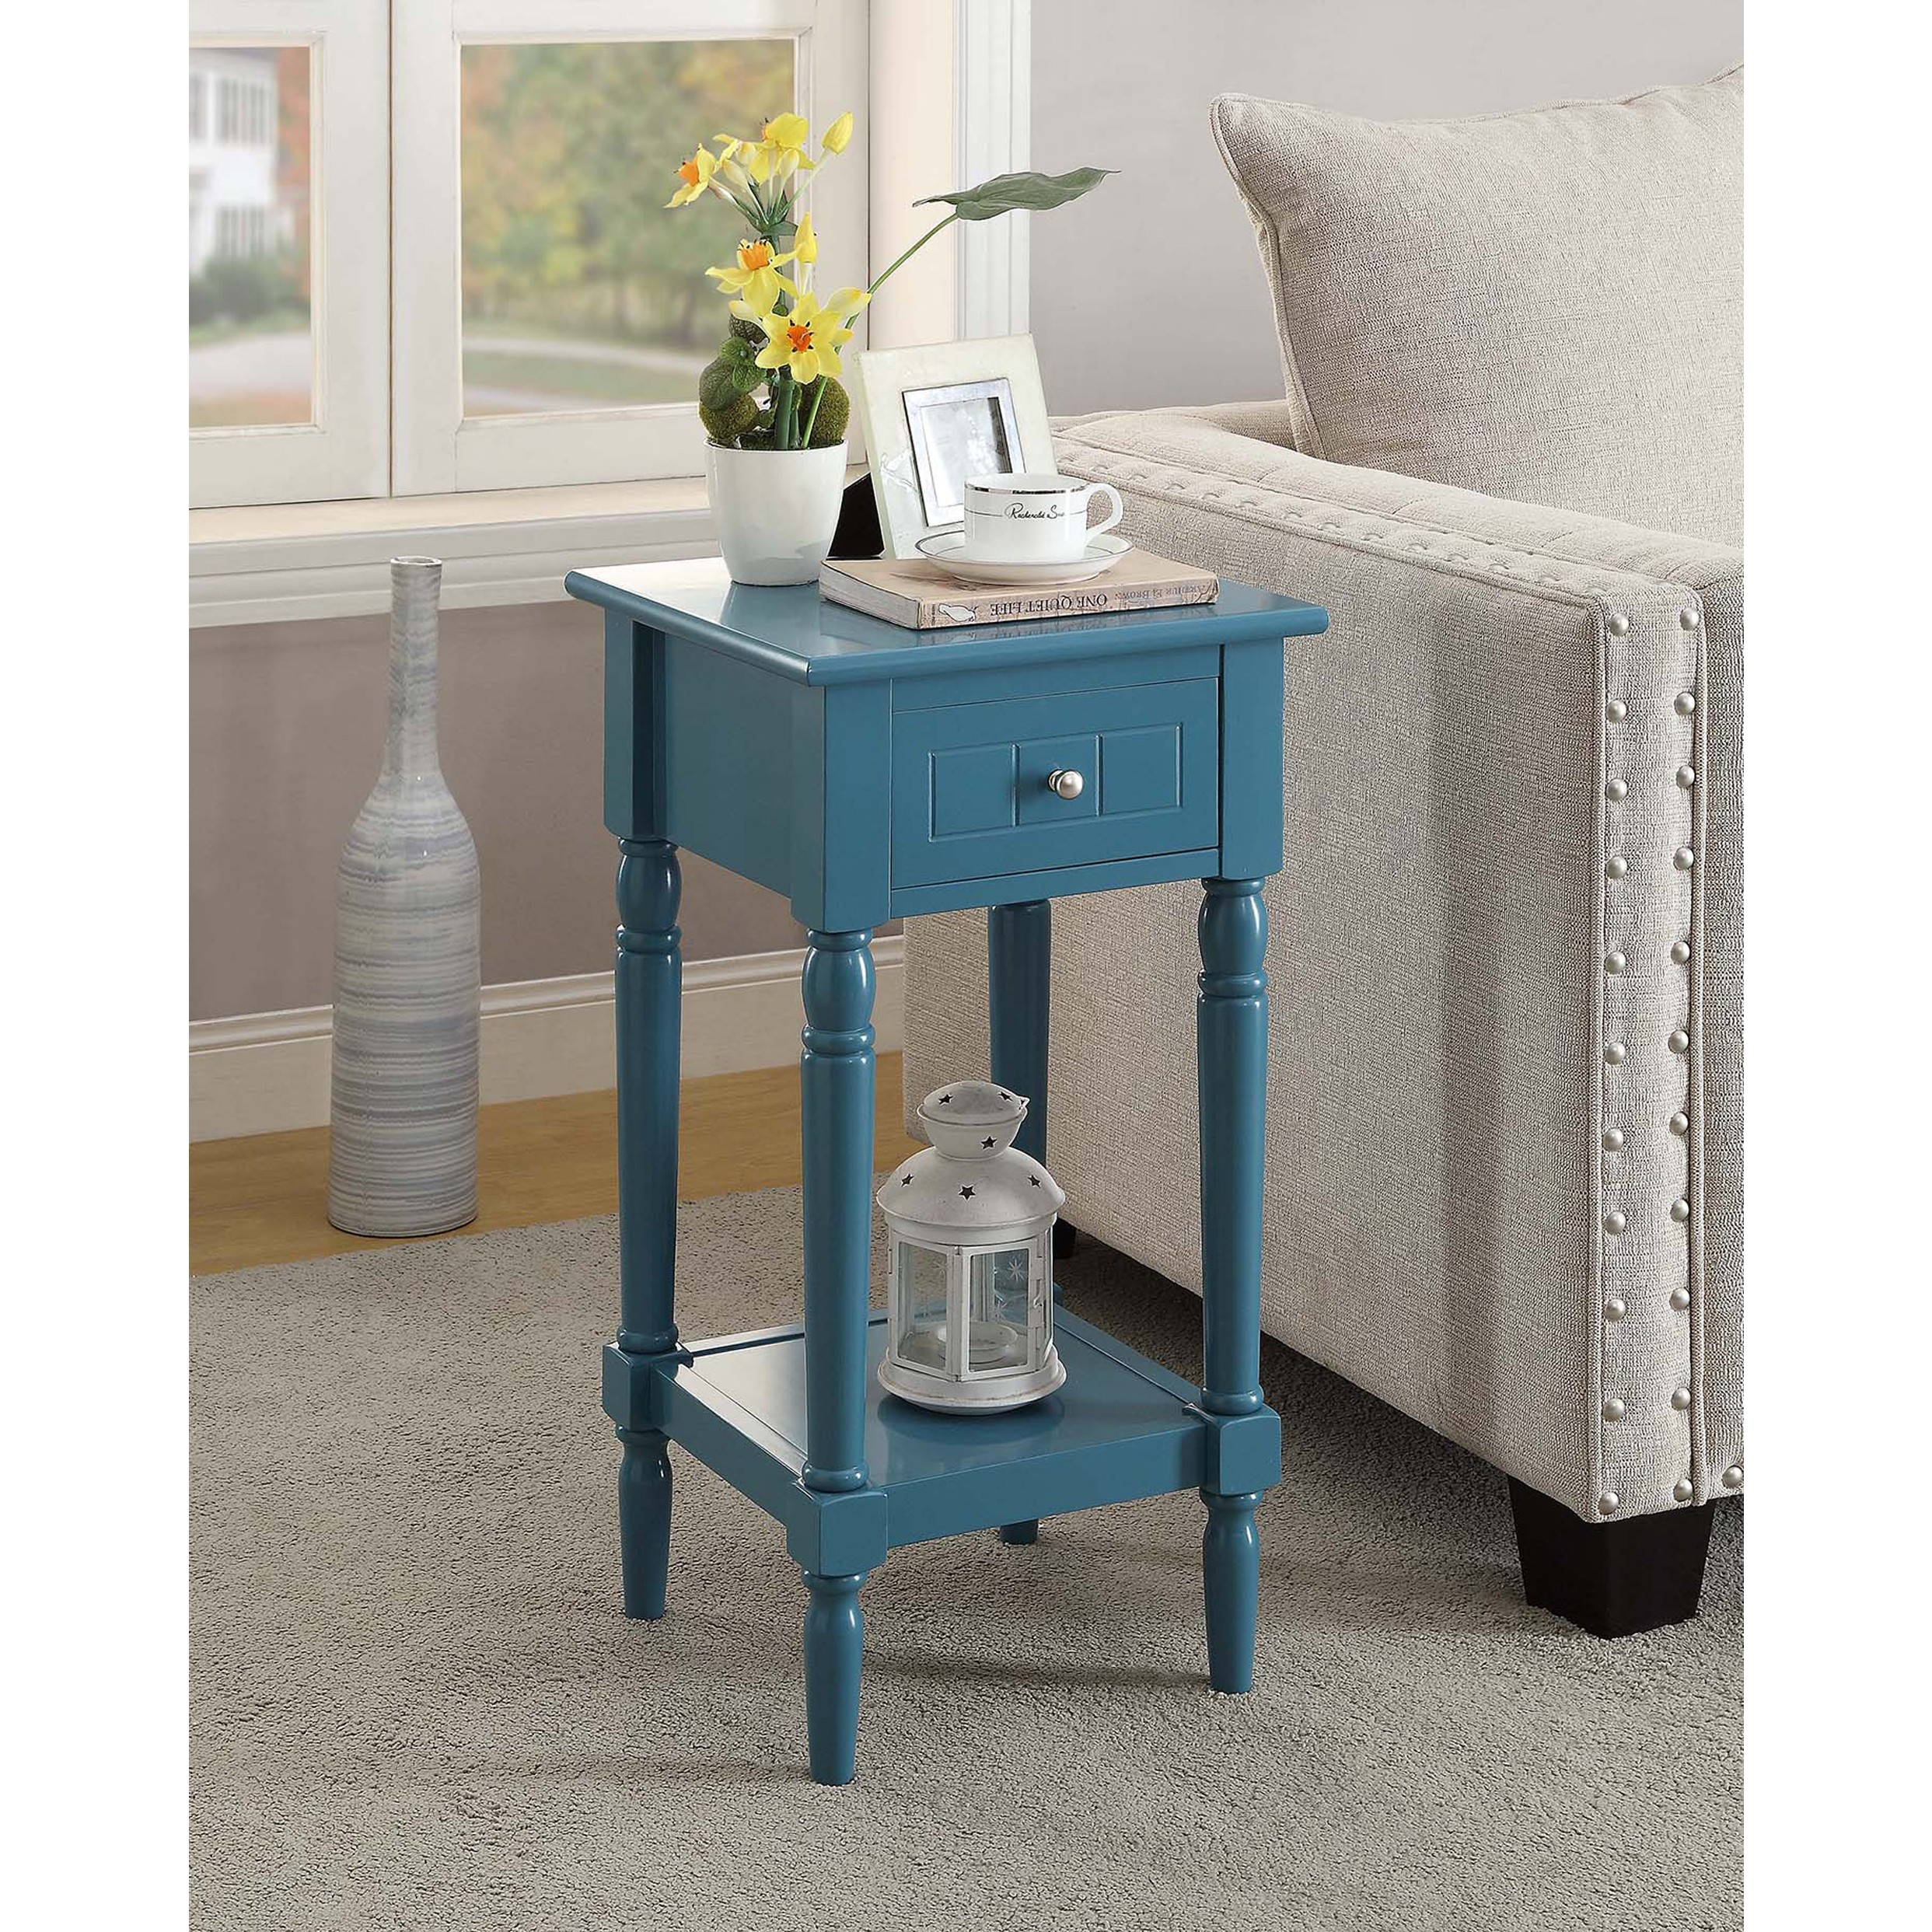 french country khloe accent table blue finish from convenience cnc resize aqua treasure trove end brown wicker bright colored coffee inch nightstand white chair round outdoor